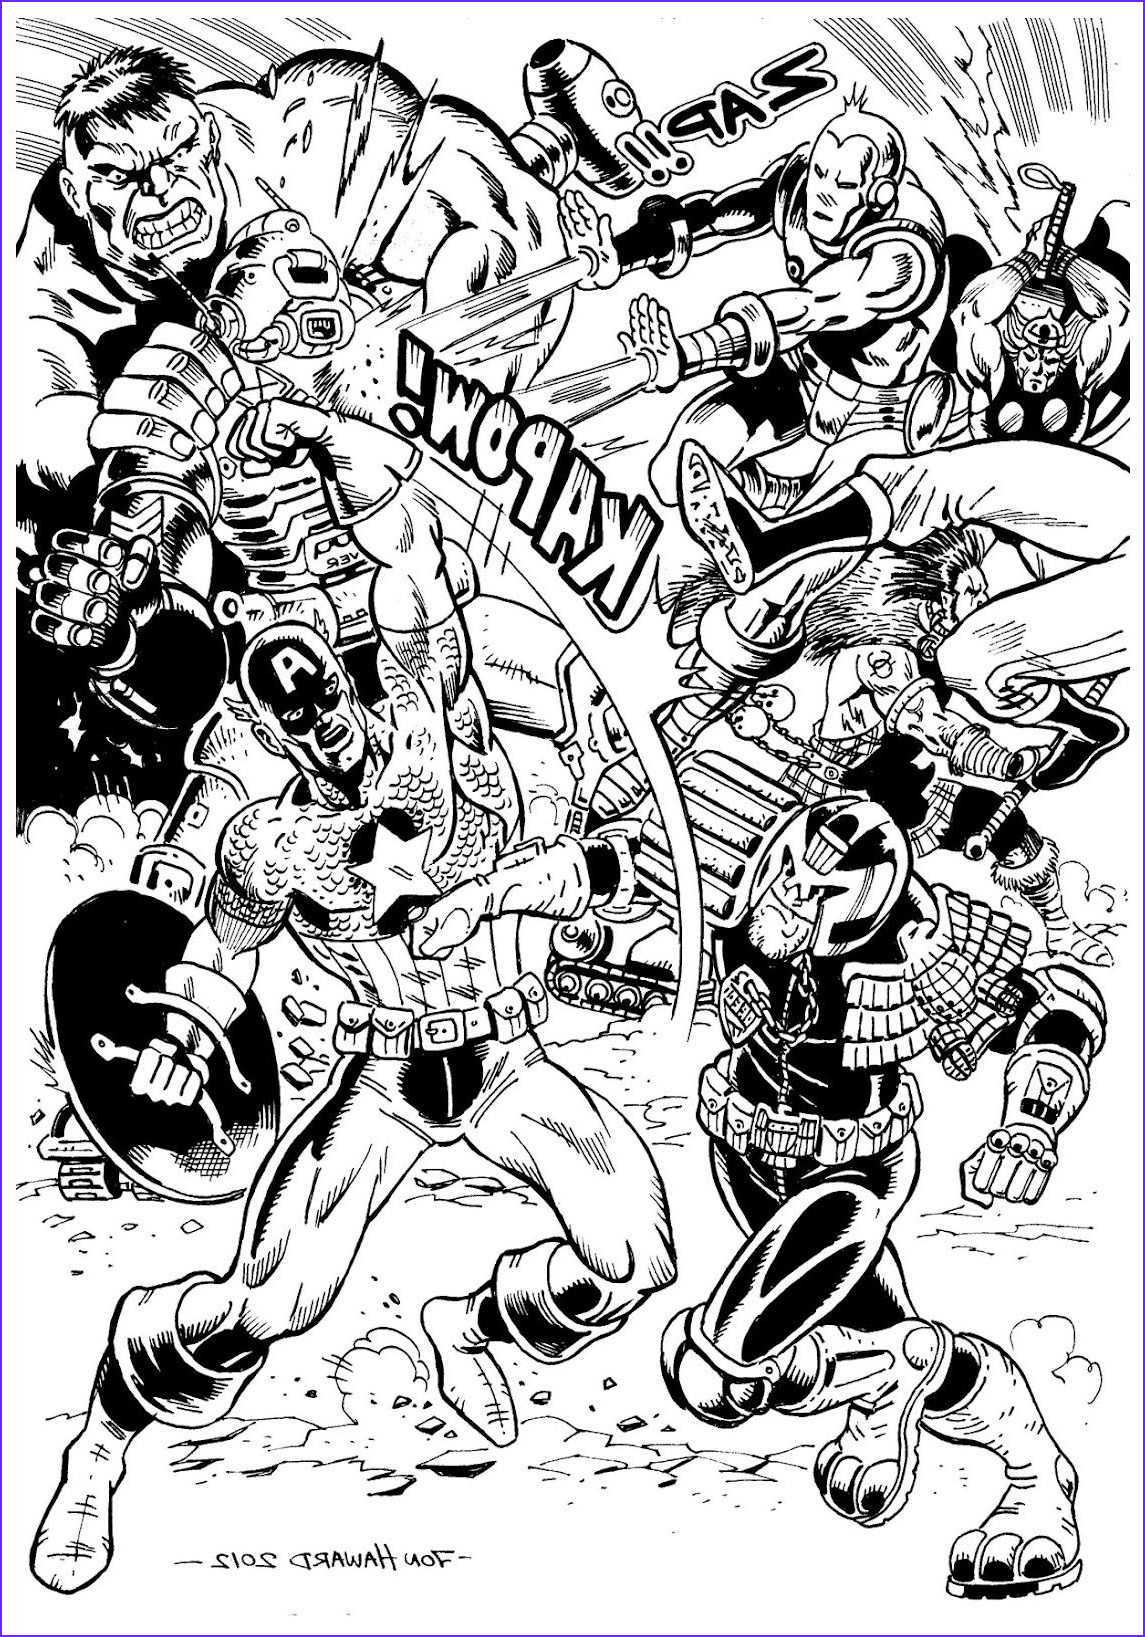 Adult Superhero Coloring Book Best Of Gallery to Print This Free Coloring Page Coloring Adult Avengers